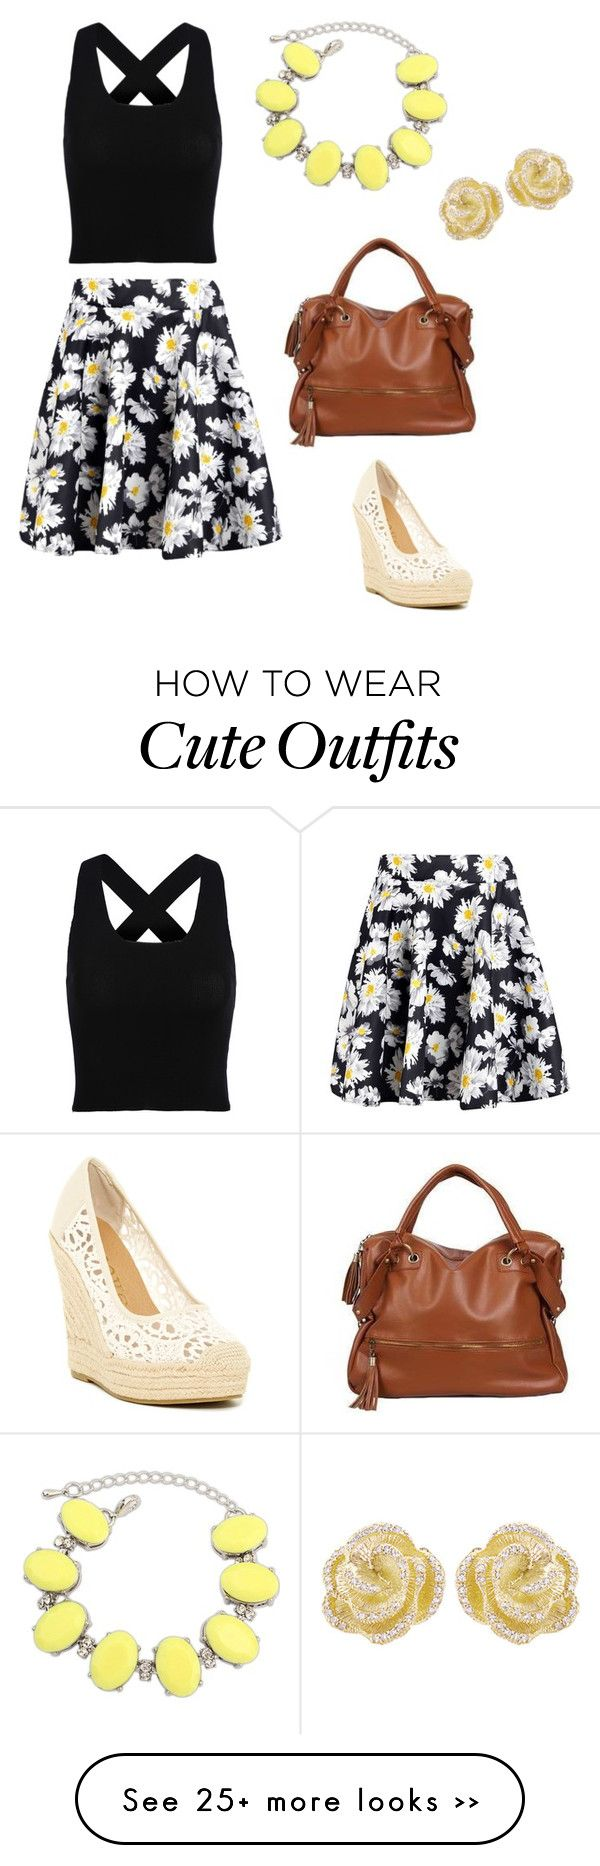 """""""Cute summer outfit"""" by gracemasterson on Polyvore featuring Groove, Boohoo, Miss Sweety, Ruby Rocks and Effy Jewelry"""